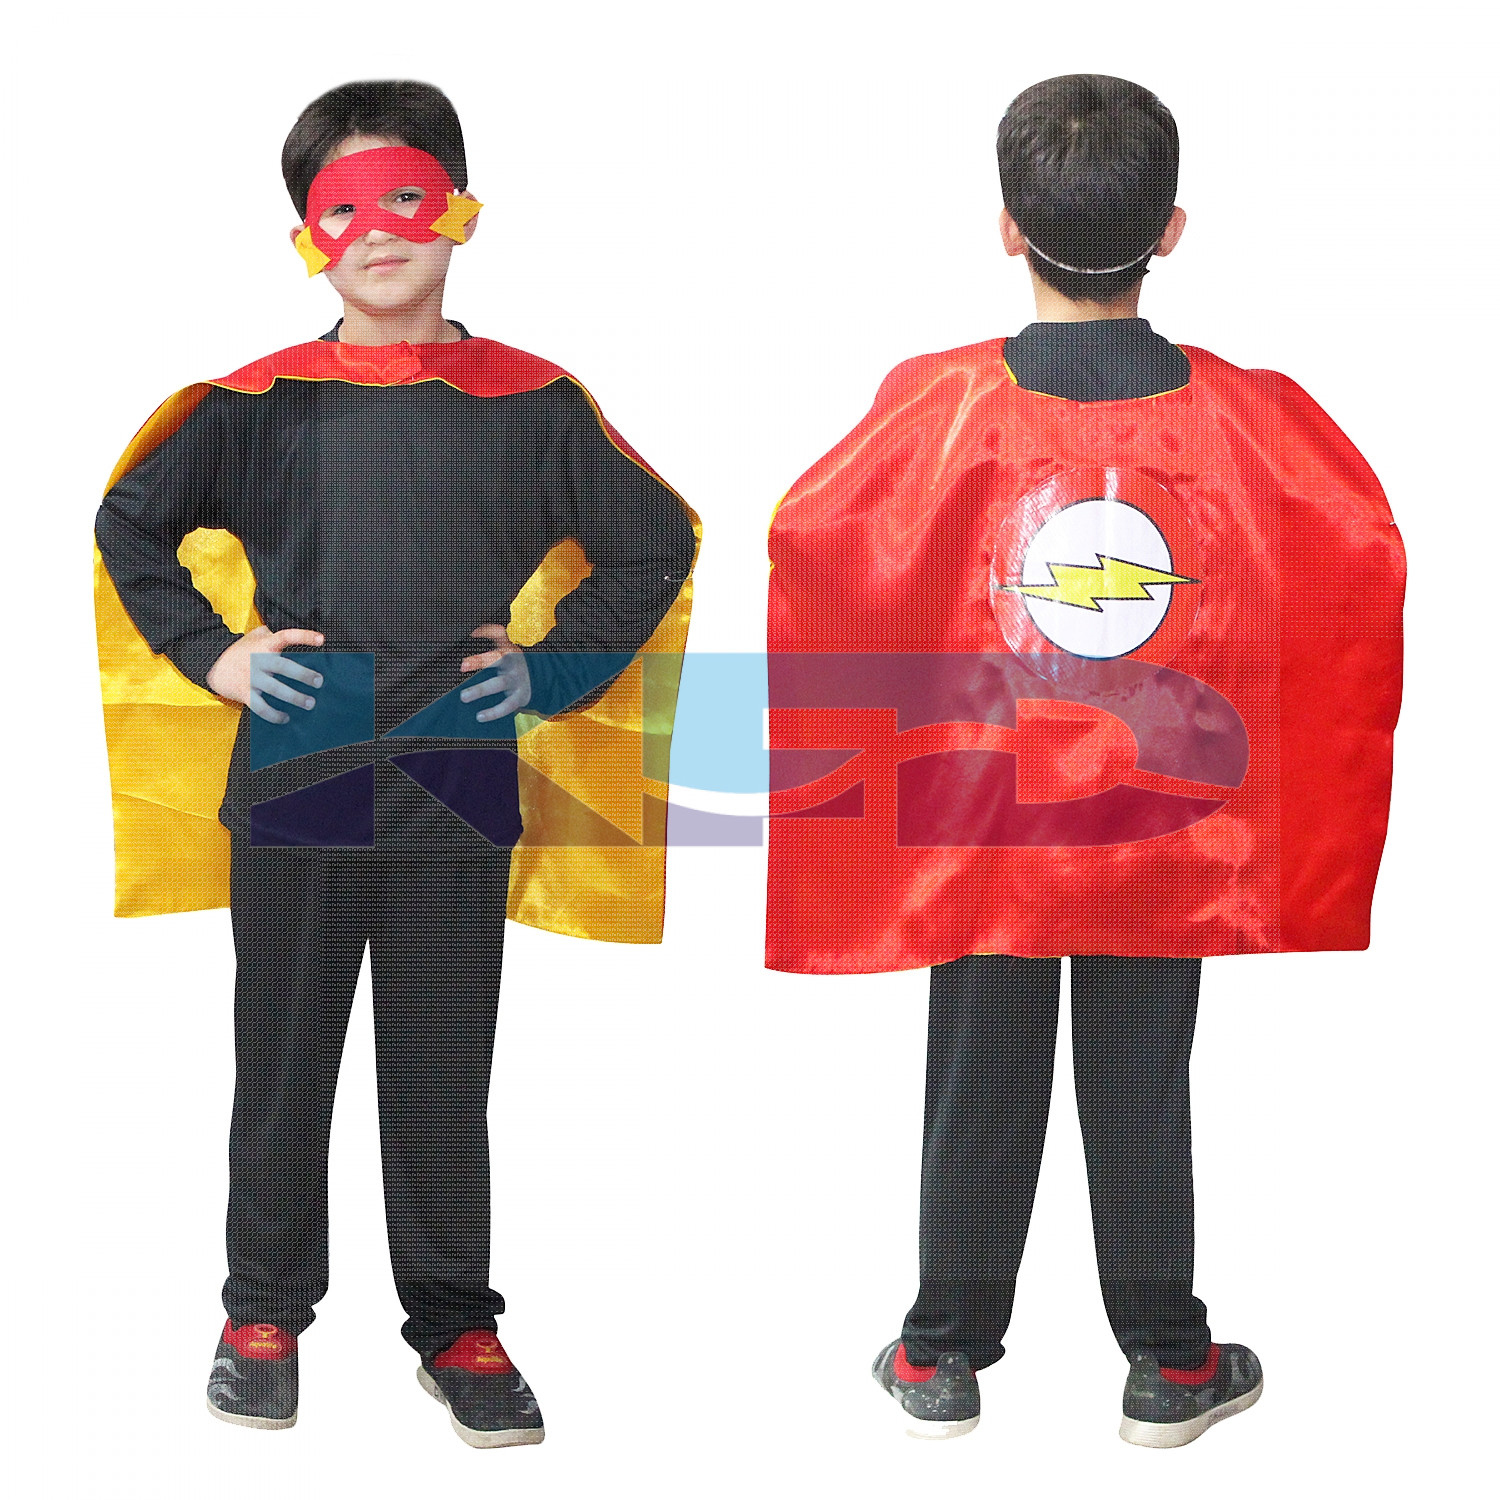 Flash Robe For Kids/California Costume For kids/Superhero Robe For kids/For Kids Annual function/Theme Party/Competition/Stage Shows/Birthday Party Dress